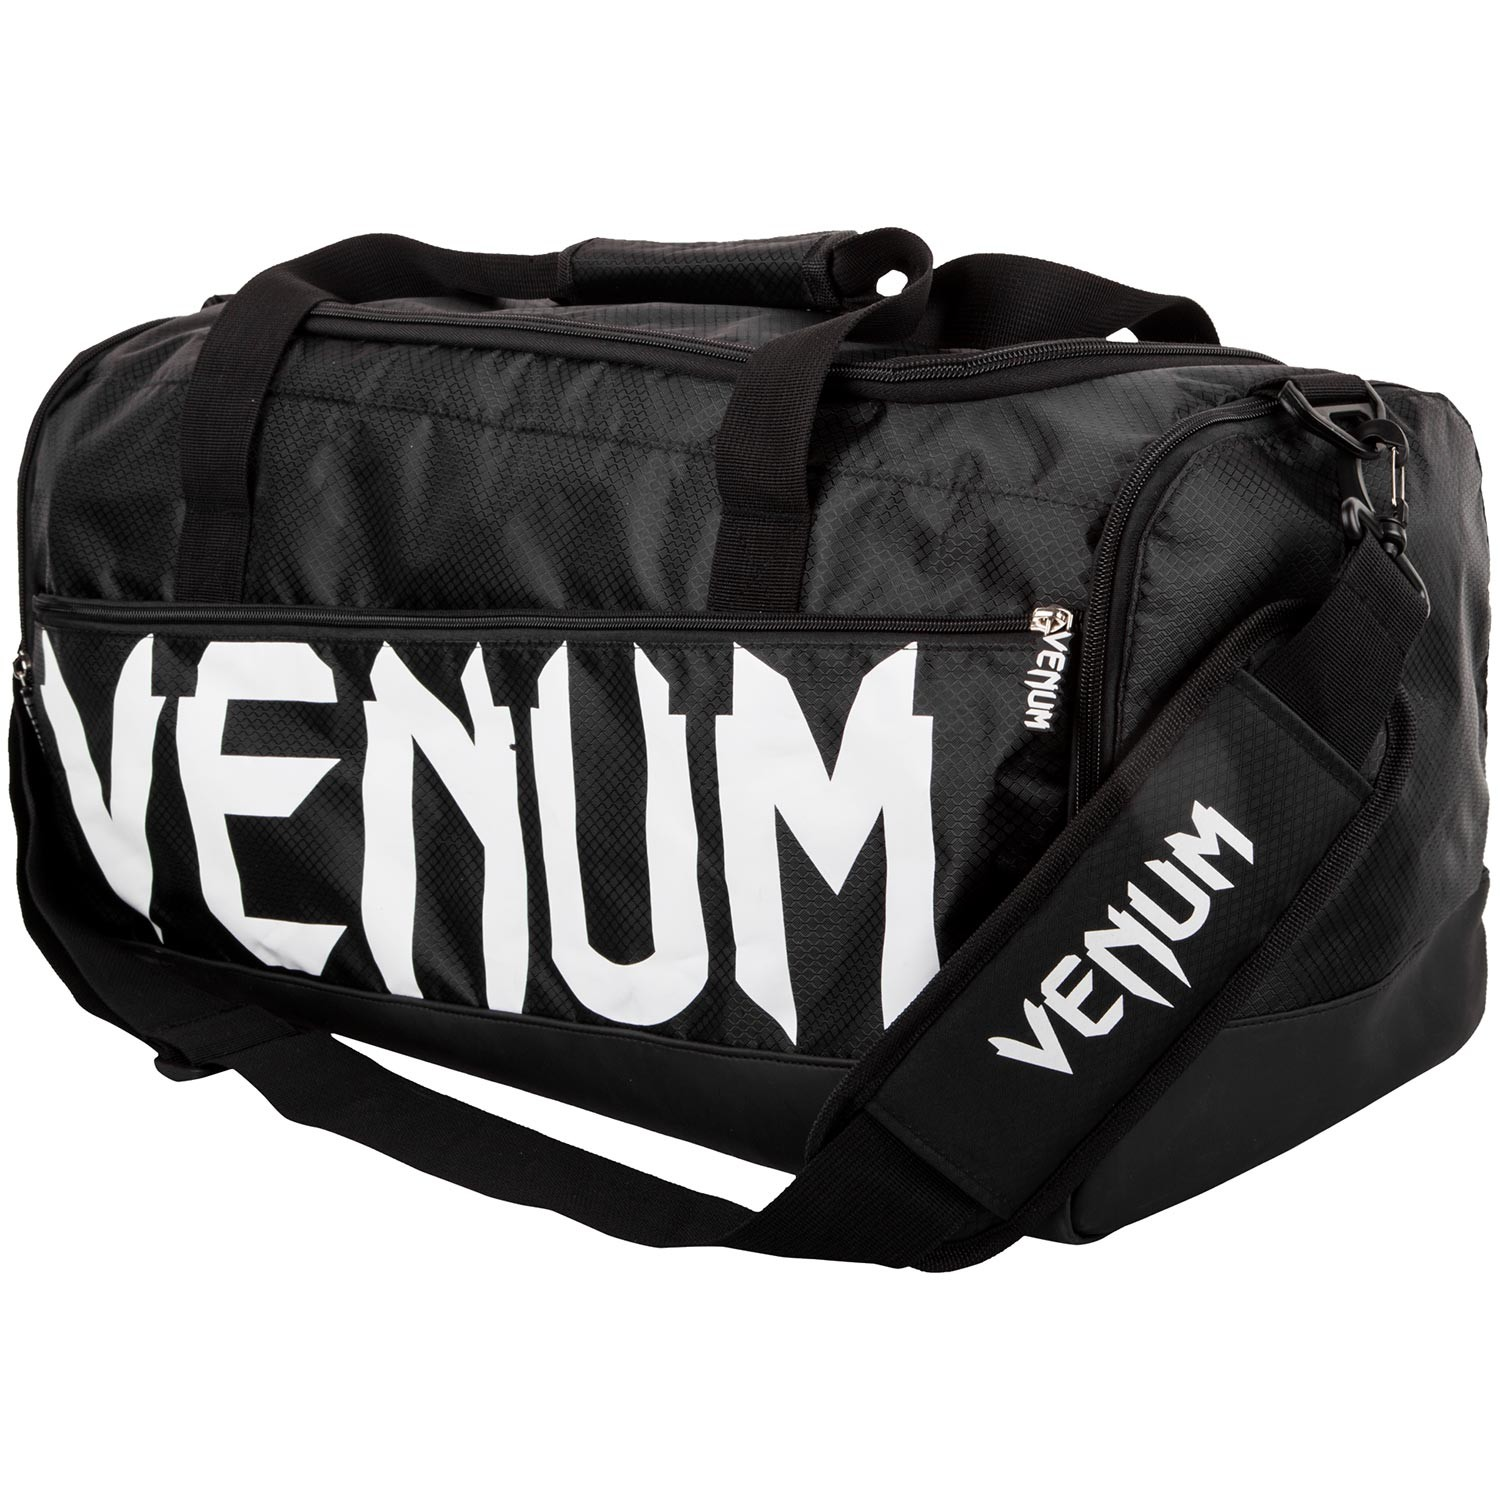 Сумка Venum Sparring Black/White<br>Вес кг: 800.00000000;